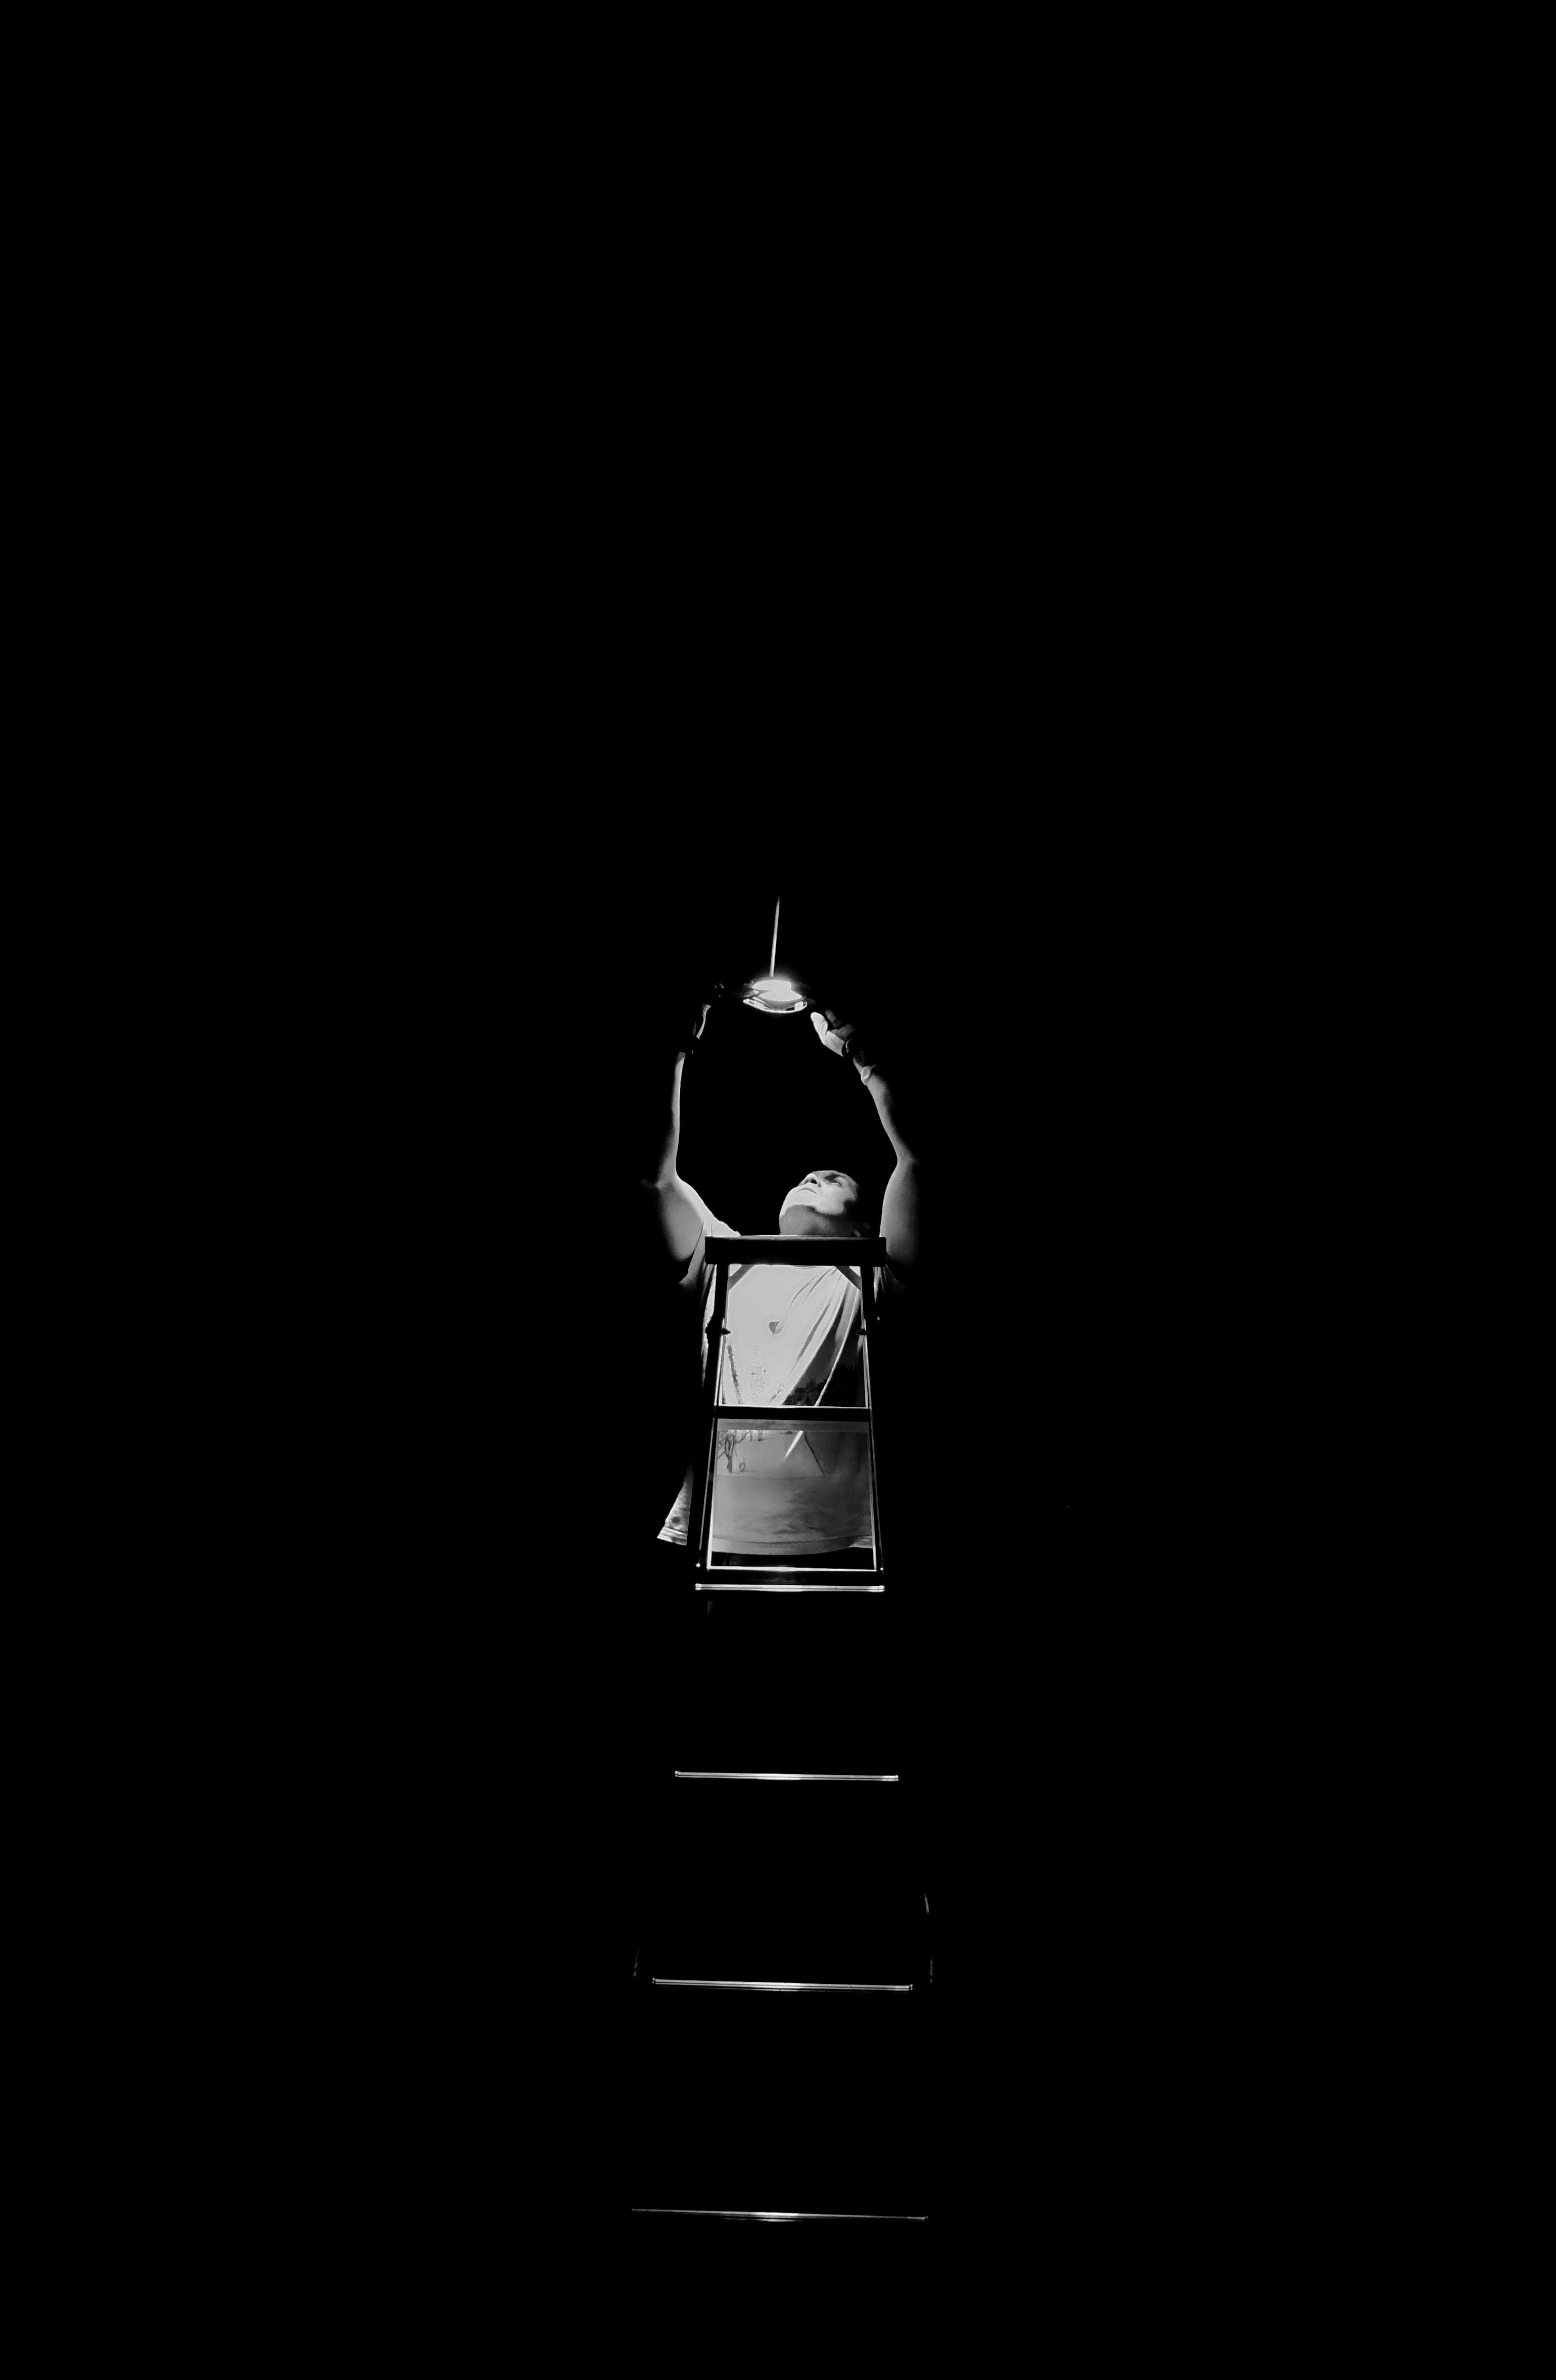 A person changing a light fixture in the dark